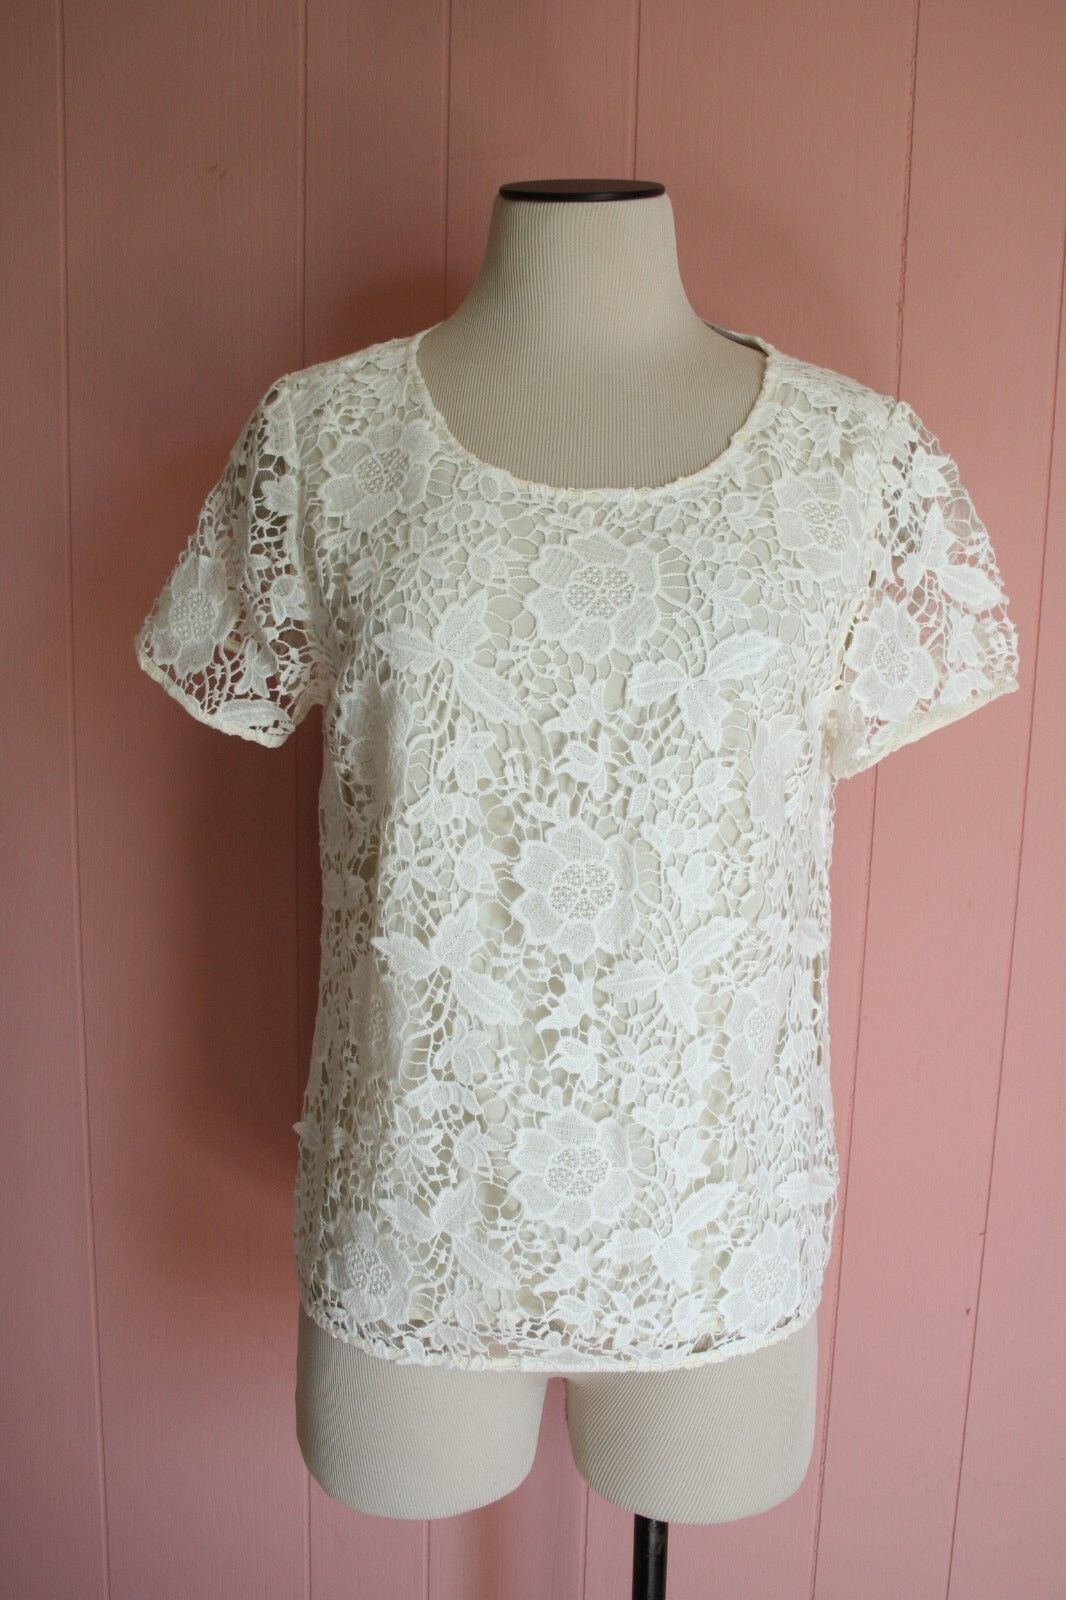 Madewell Meadowlace Tee S Small 2 4 6 Pearl White Ivory Floral Lace Top NWT